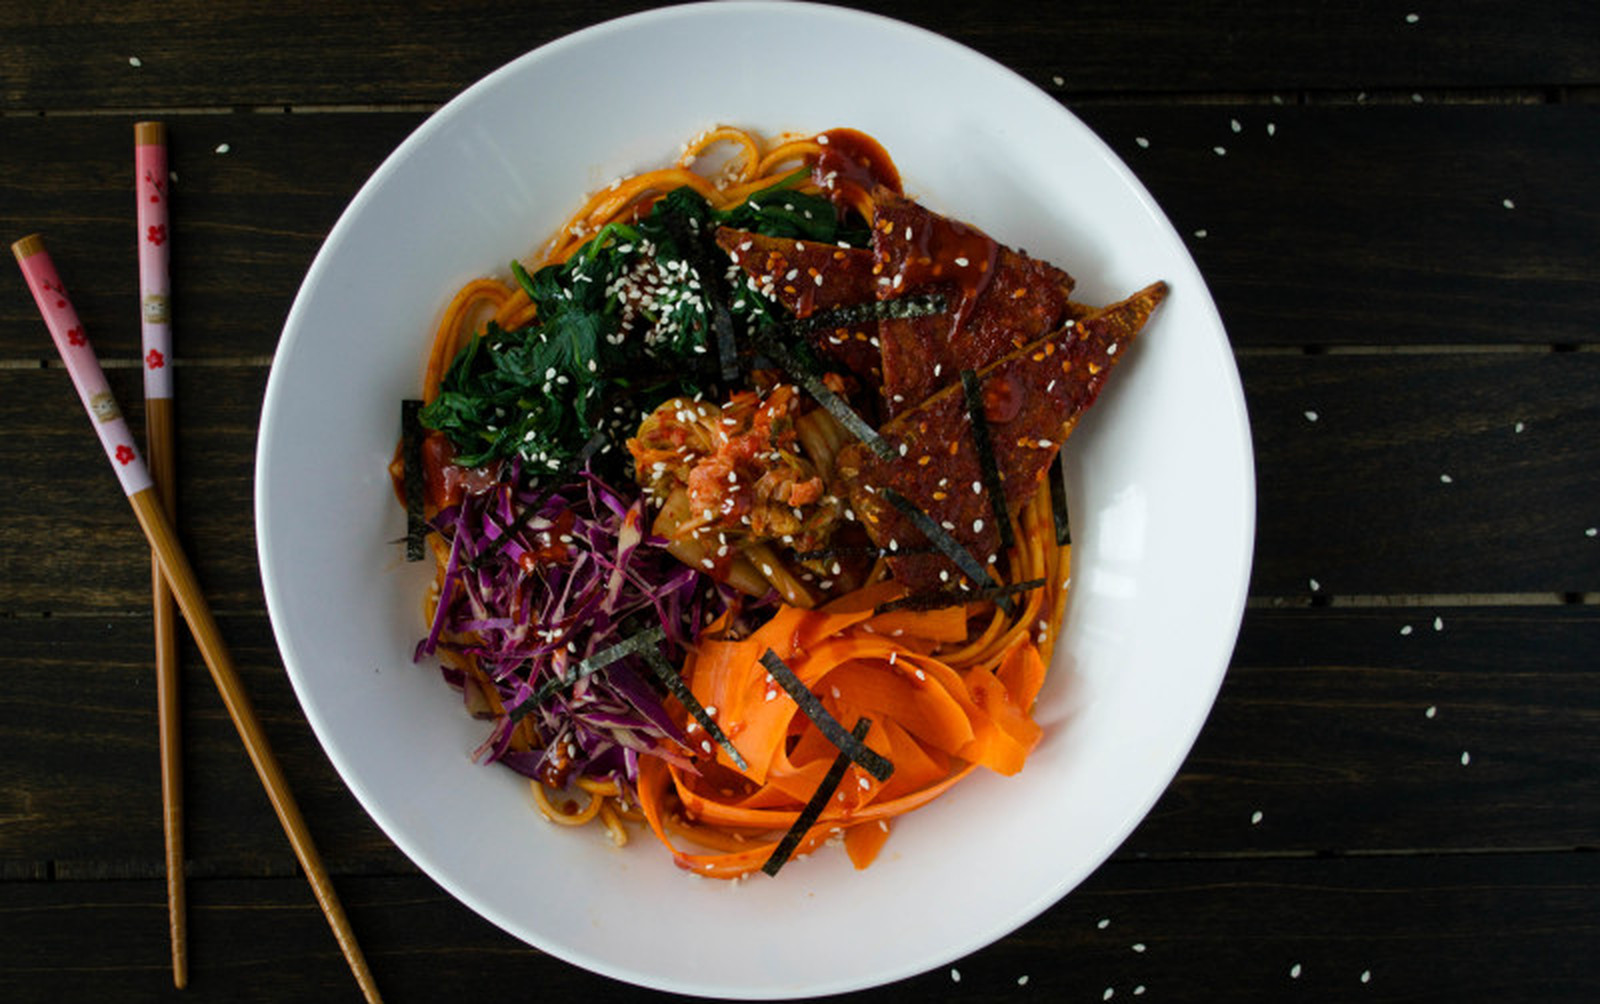 Cold Udon Noodles With Spicy Bibimbap Sauce [Vegan]